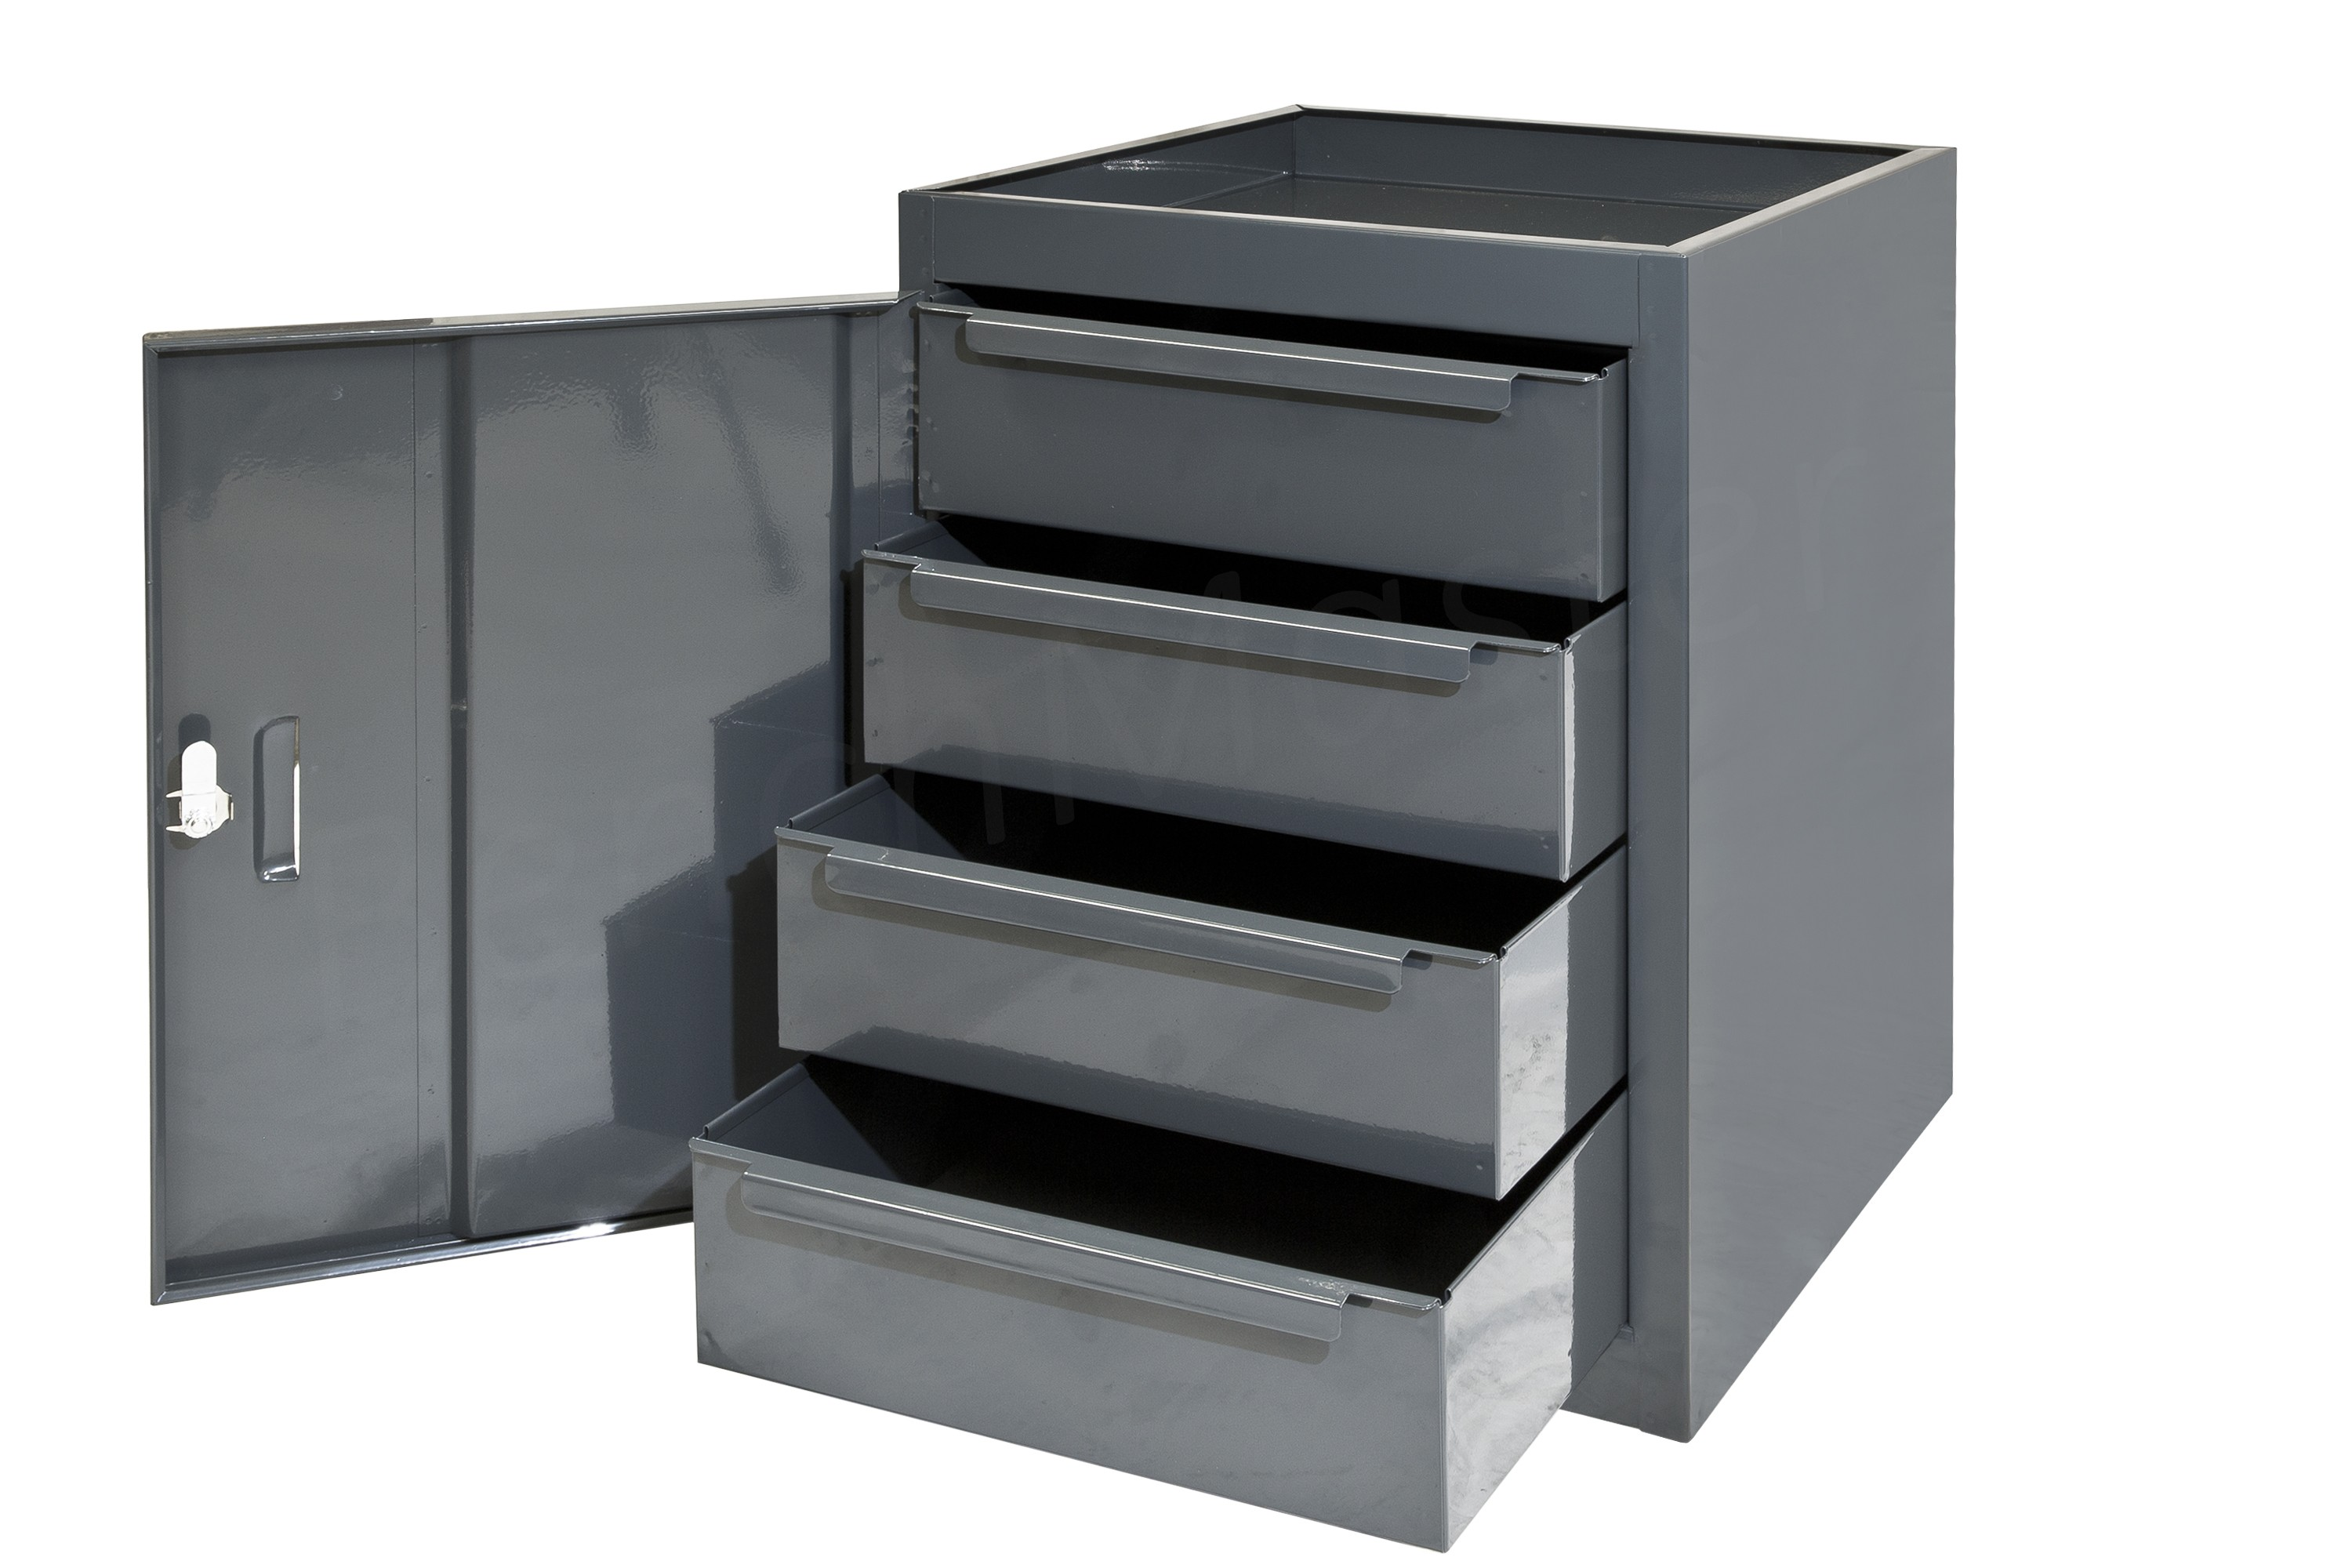 CUP4DMD - 4 Drawer Unit - 610h x 457w x 457d mm